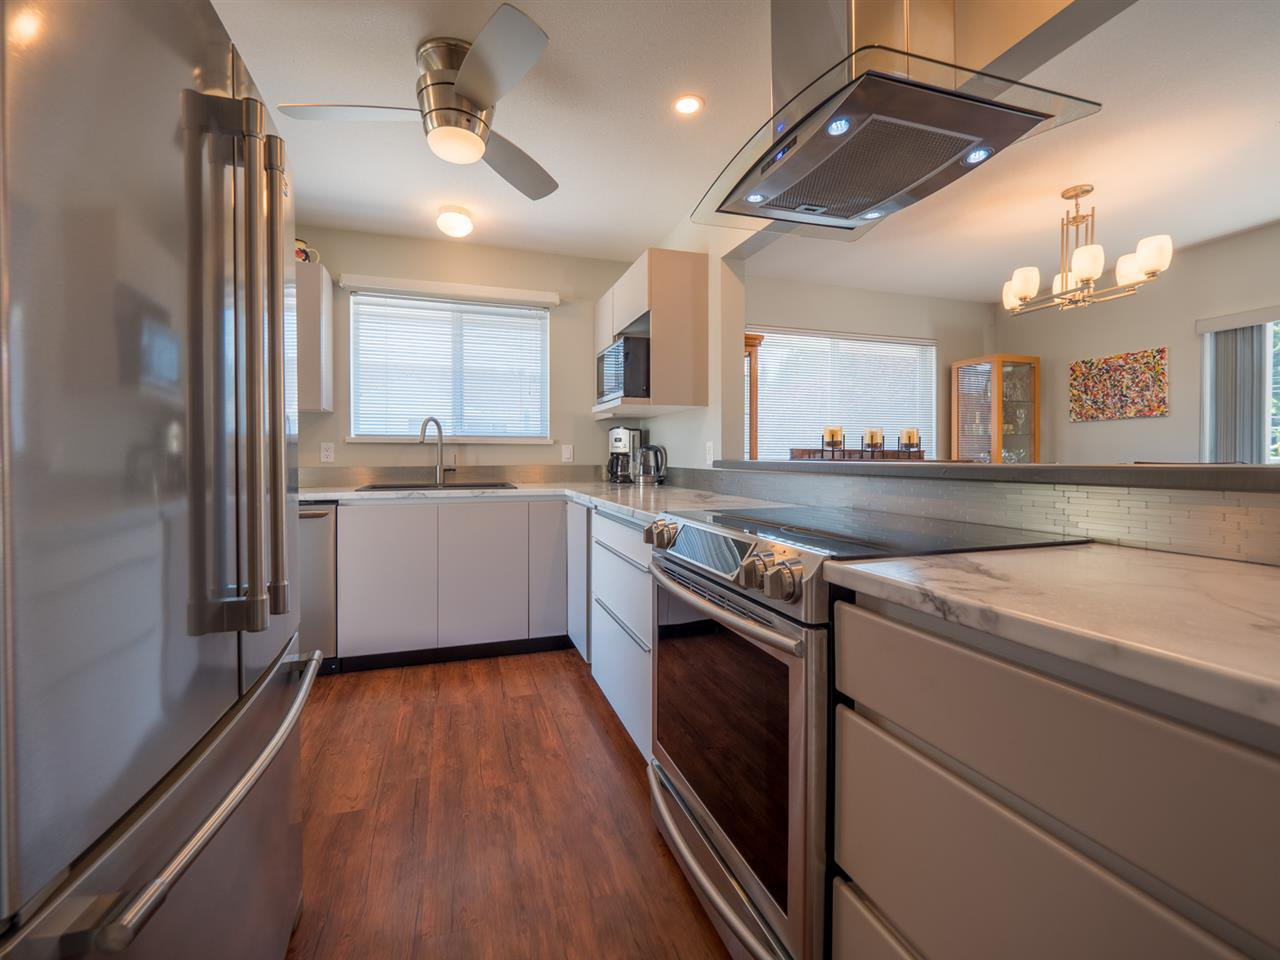 """Photo 5: Photos: 16 5630 TRAIL Avenue in Sechelt: Sechelt District Townhouse for sale in """"HIGHPOINT"""" (Sunshine Coast)  : MLS®# R2382780"""